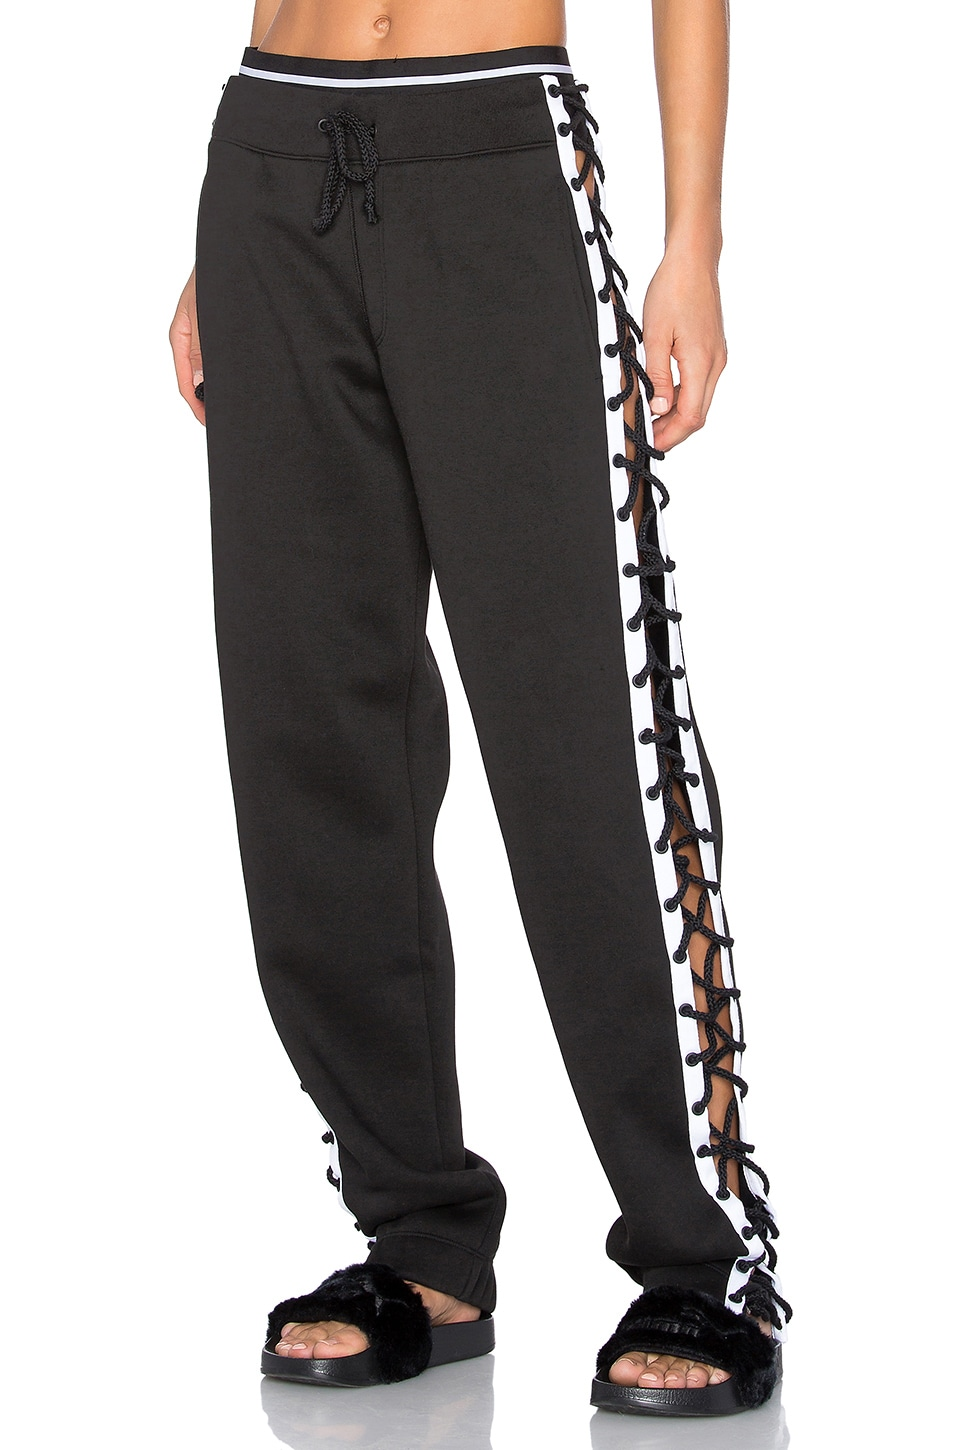 Fenty by Puma Lace Up Sweat Pant in Black & White